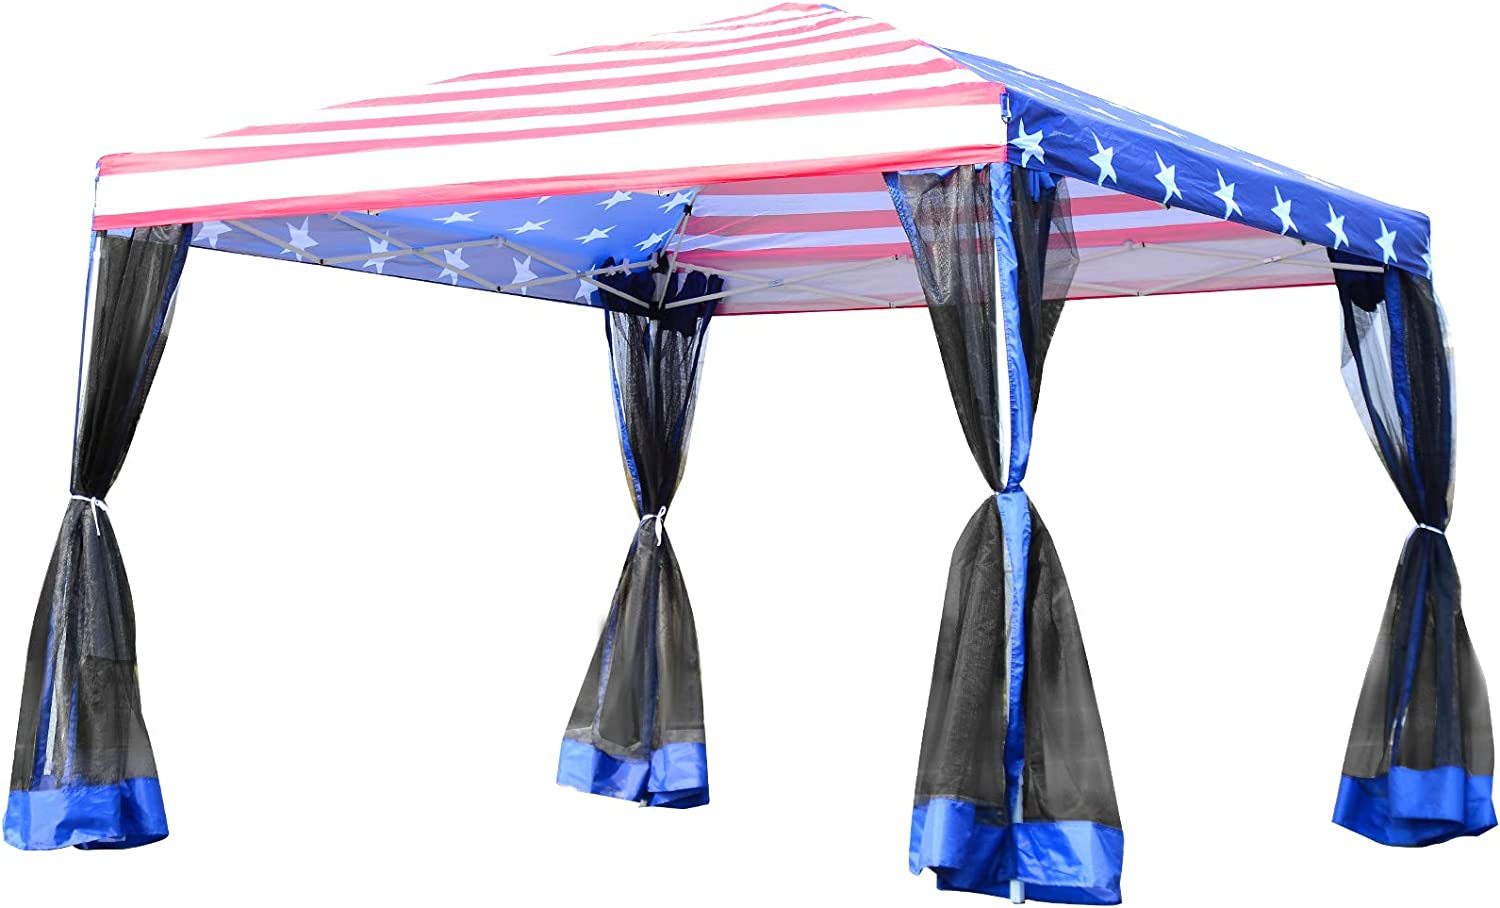 Outsunny 10' x 10' Pop-up Canopy Vendor Tent with Removeable Mesh Walls, Easy Setup Design & Travel Bag Included White American Flag